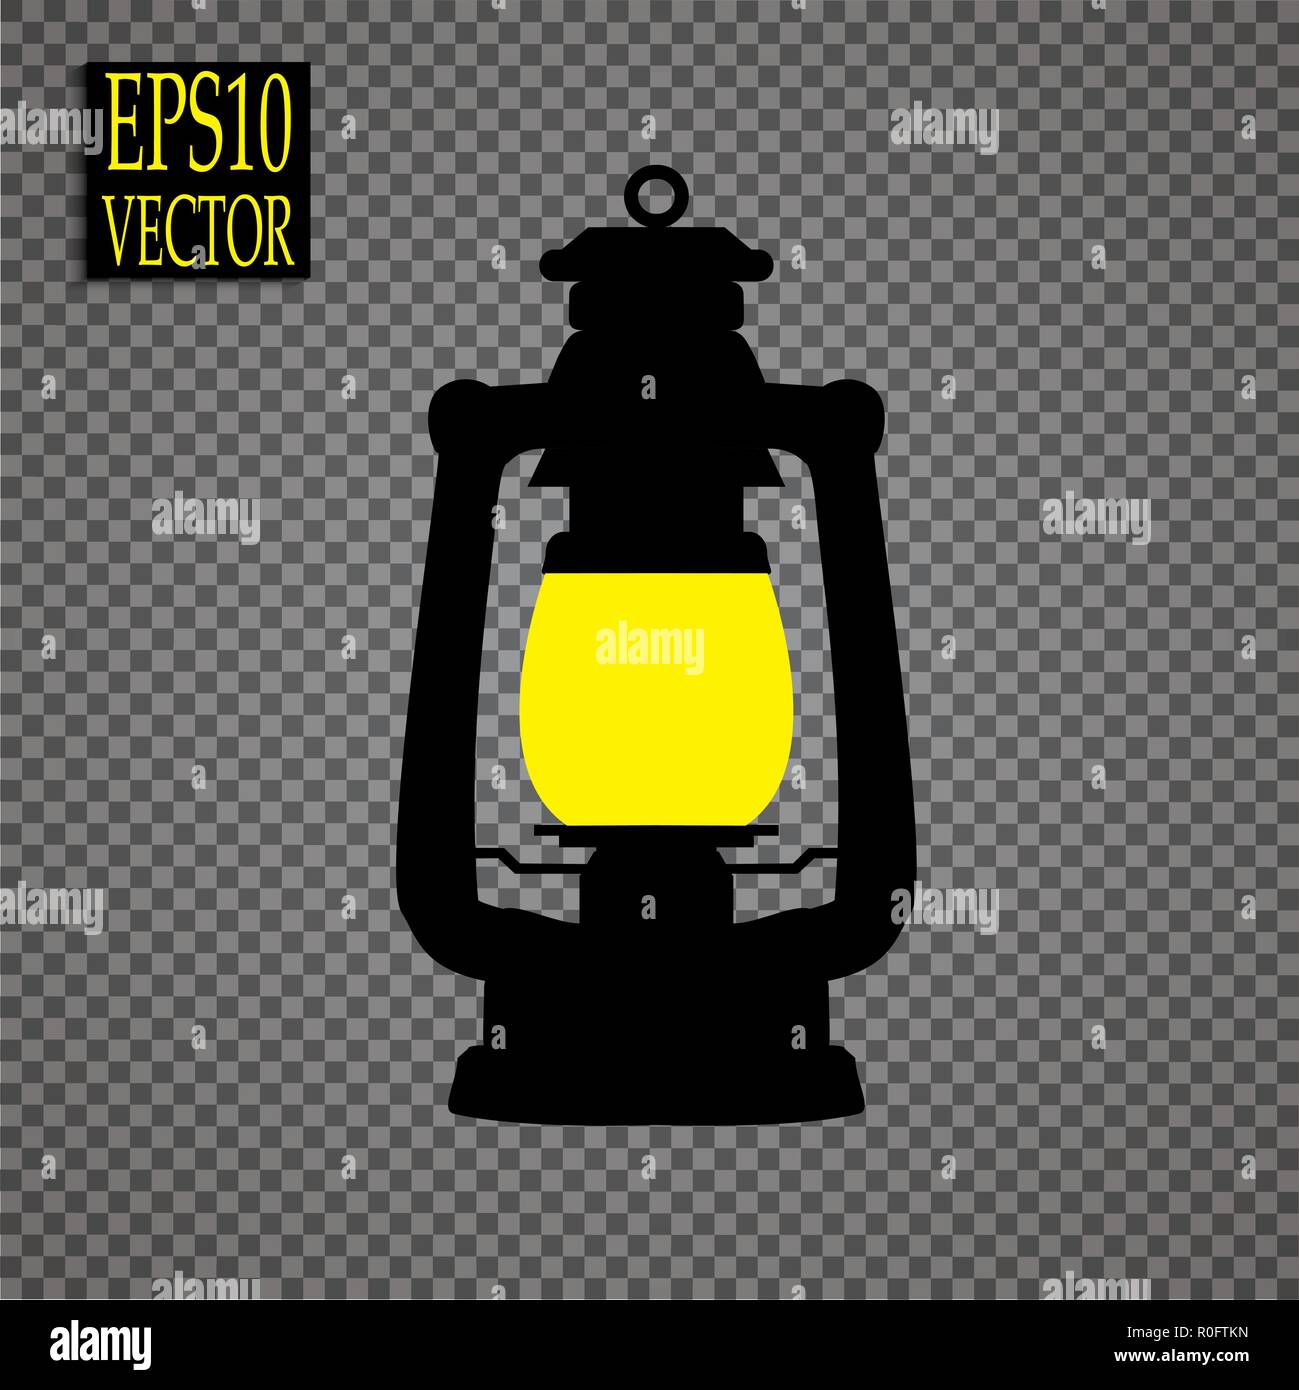 Lantern icon in black style isolated on white background. Mine symbol stock vector illustration - Stock Vector